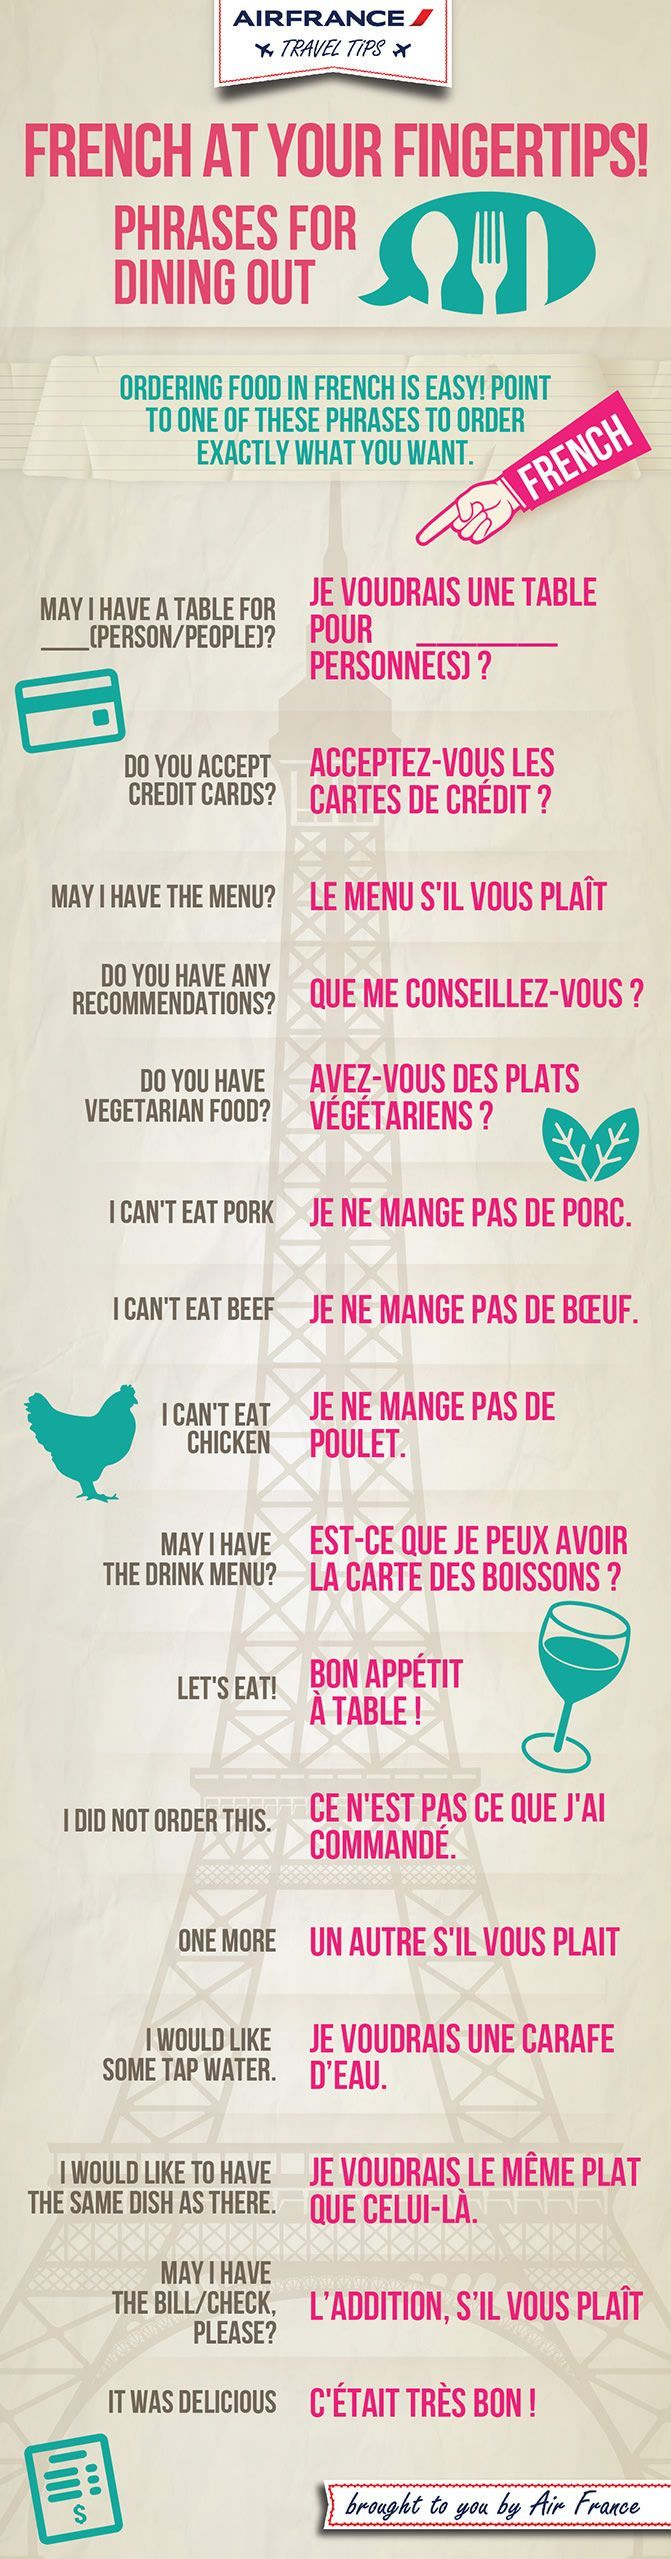 42 best french images on pinterest french language learning air france travel tips french language phrases fandeluxe Choice Image